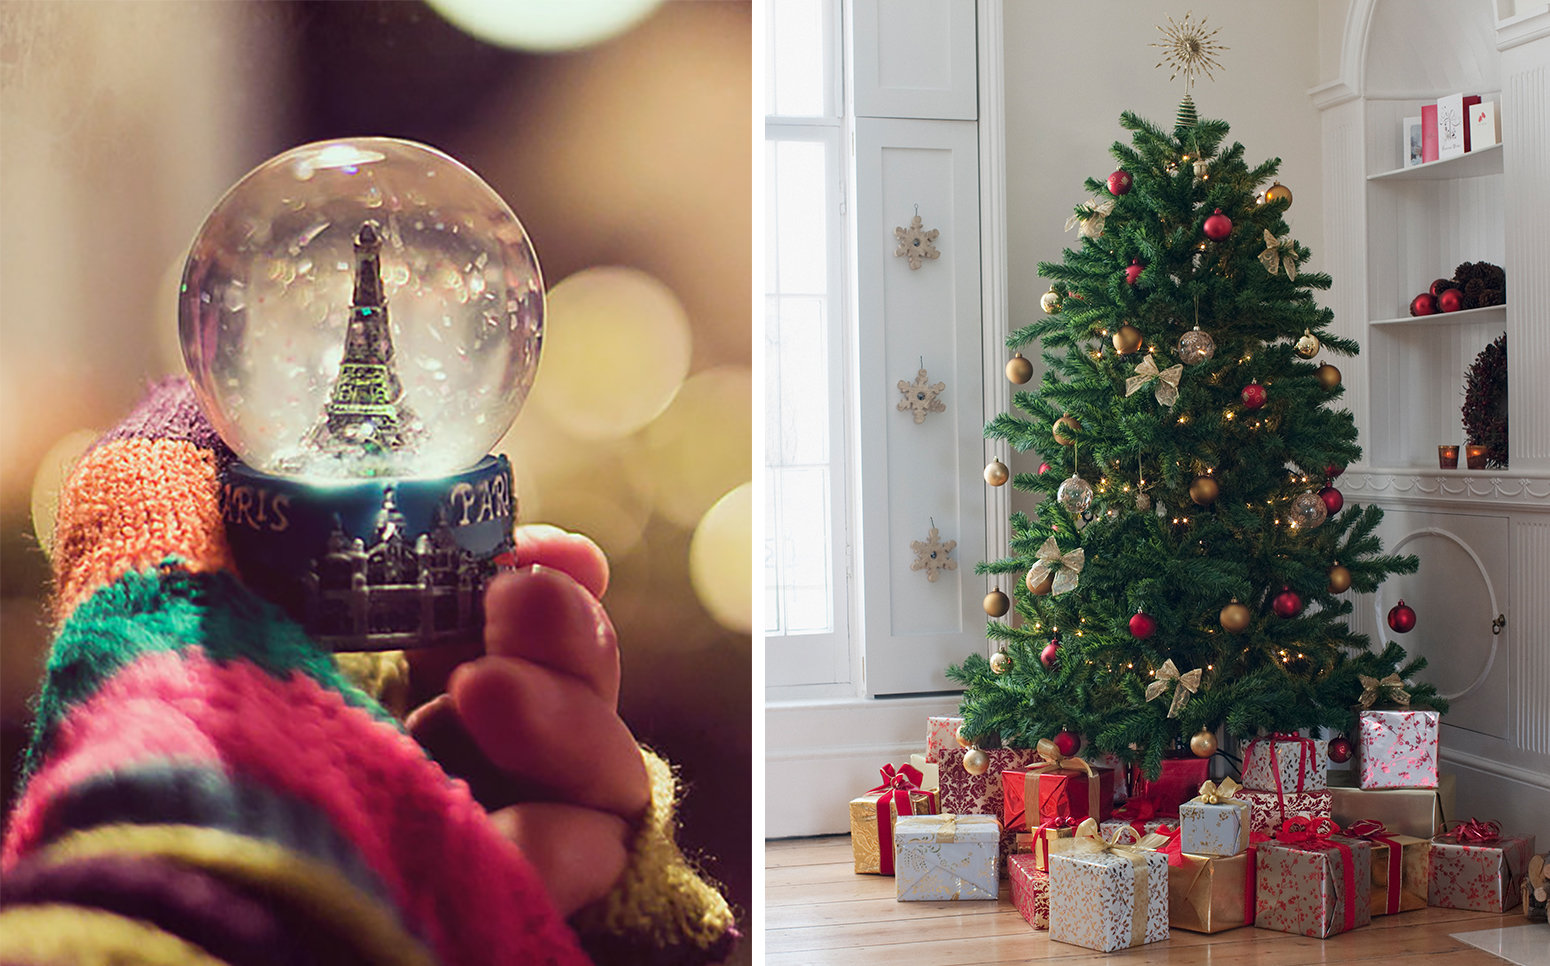 A snow-globe and a Christmas tree